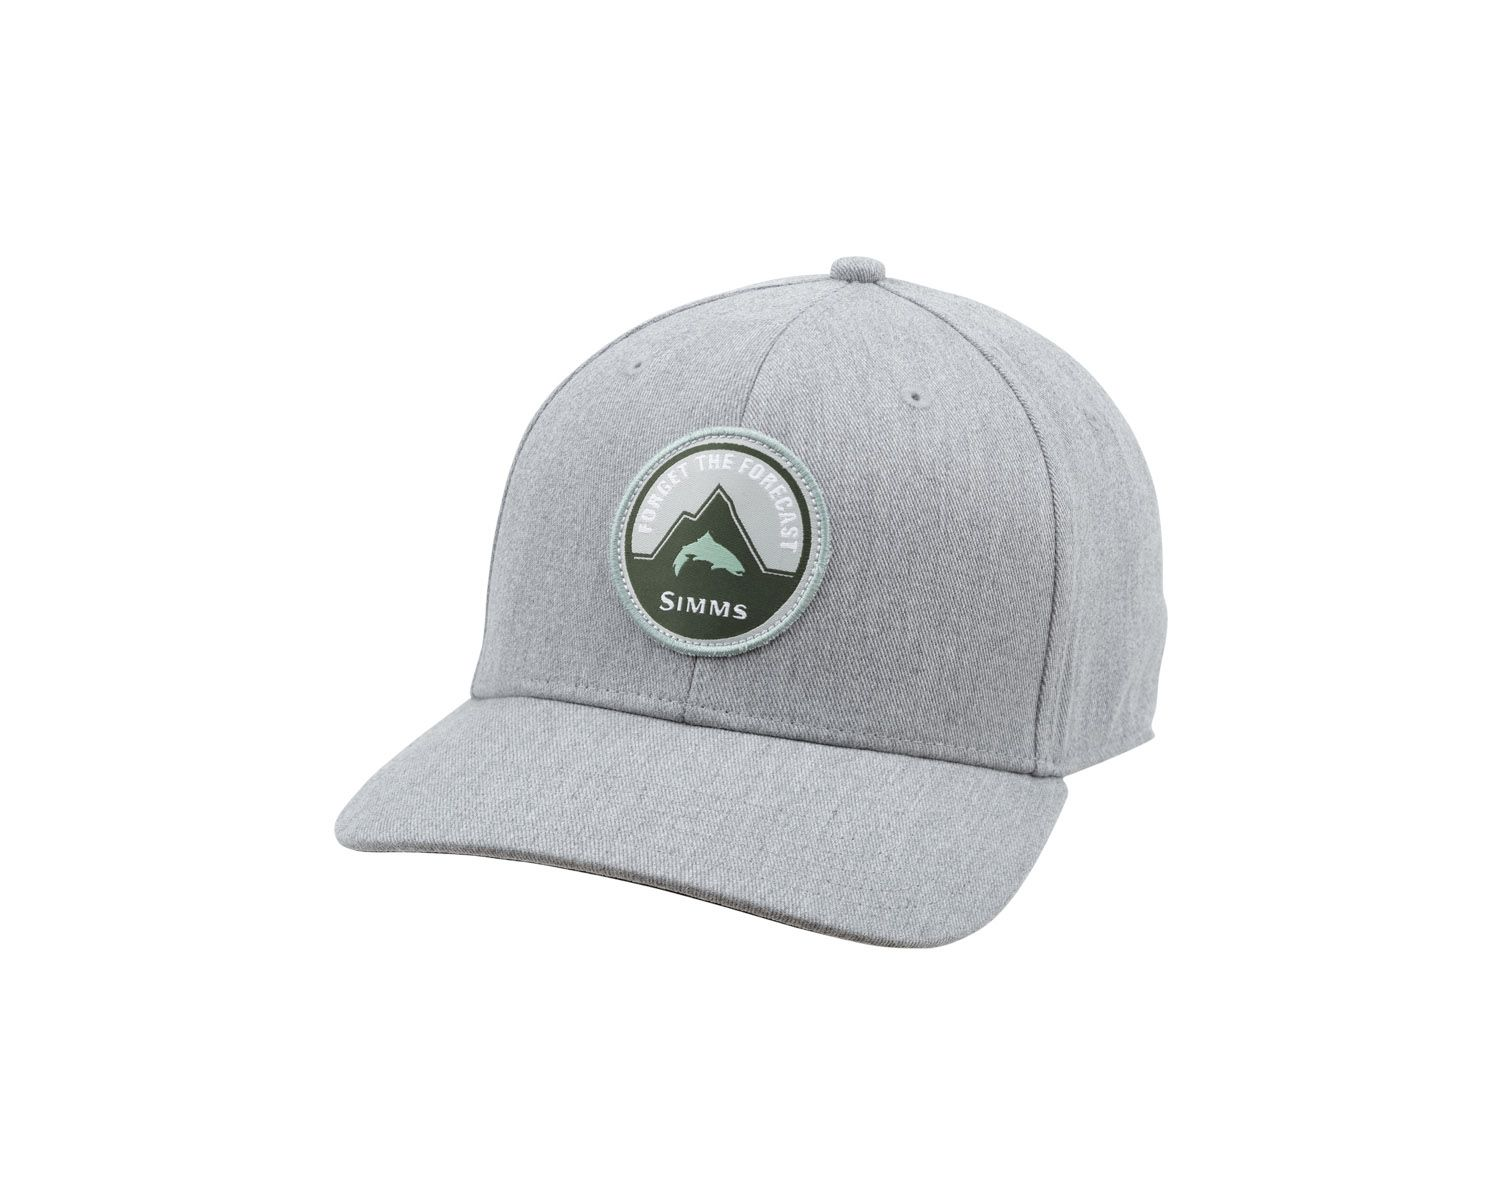 In honor of today's weather Simms Forget the Forecast hats $20 in the online store